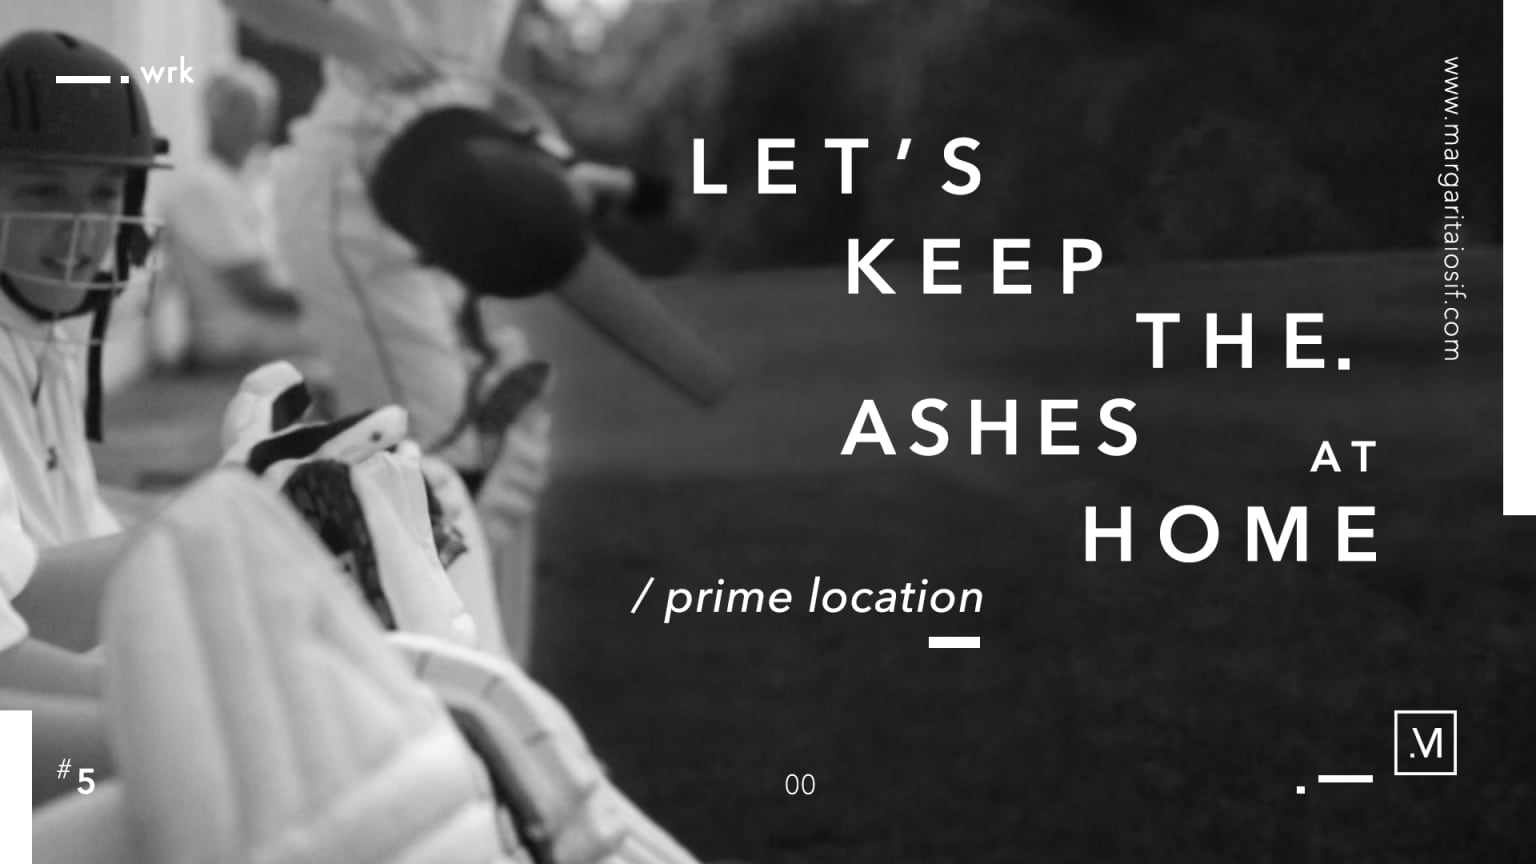 Prime Location | Let's Keep the Ashes at Home